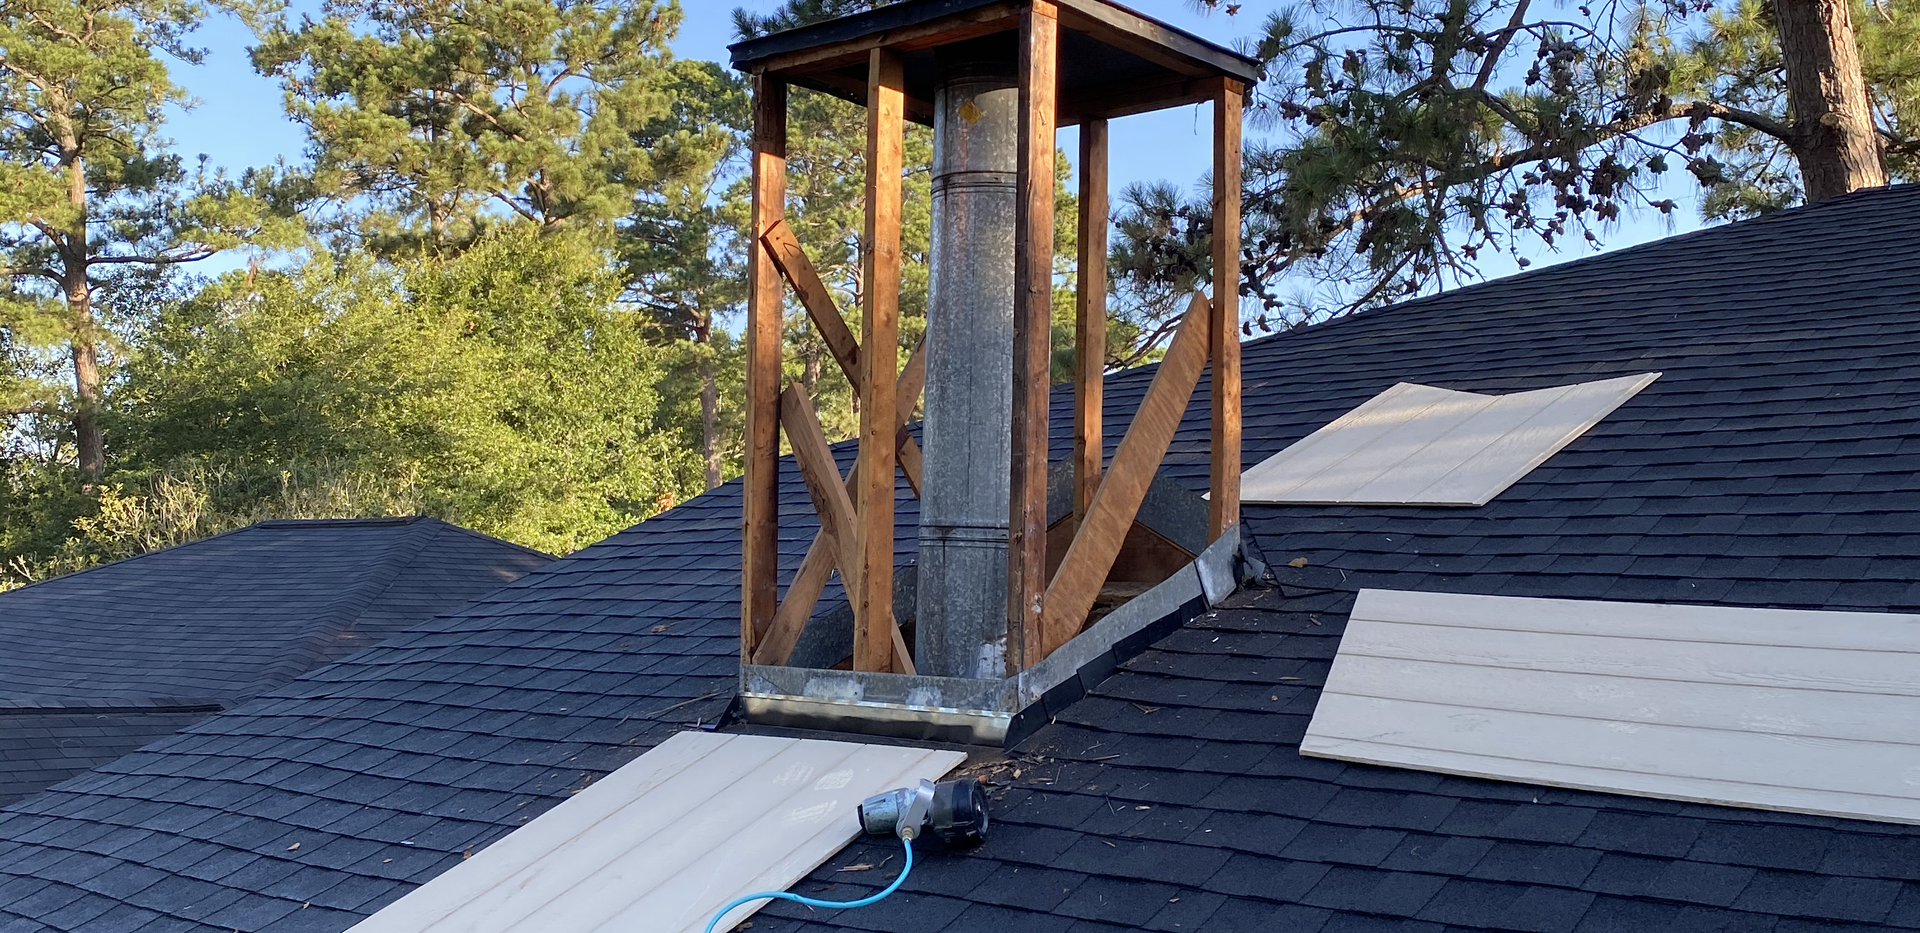 CHIMNEY BEING REPLACED